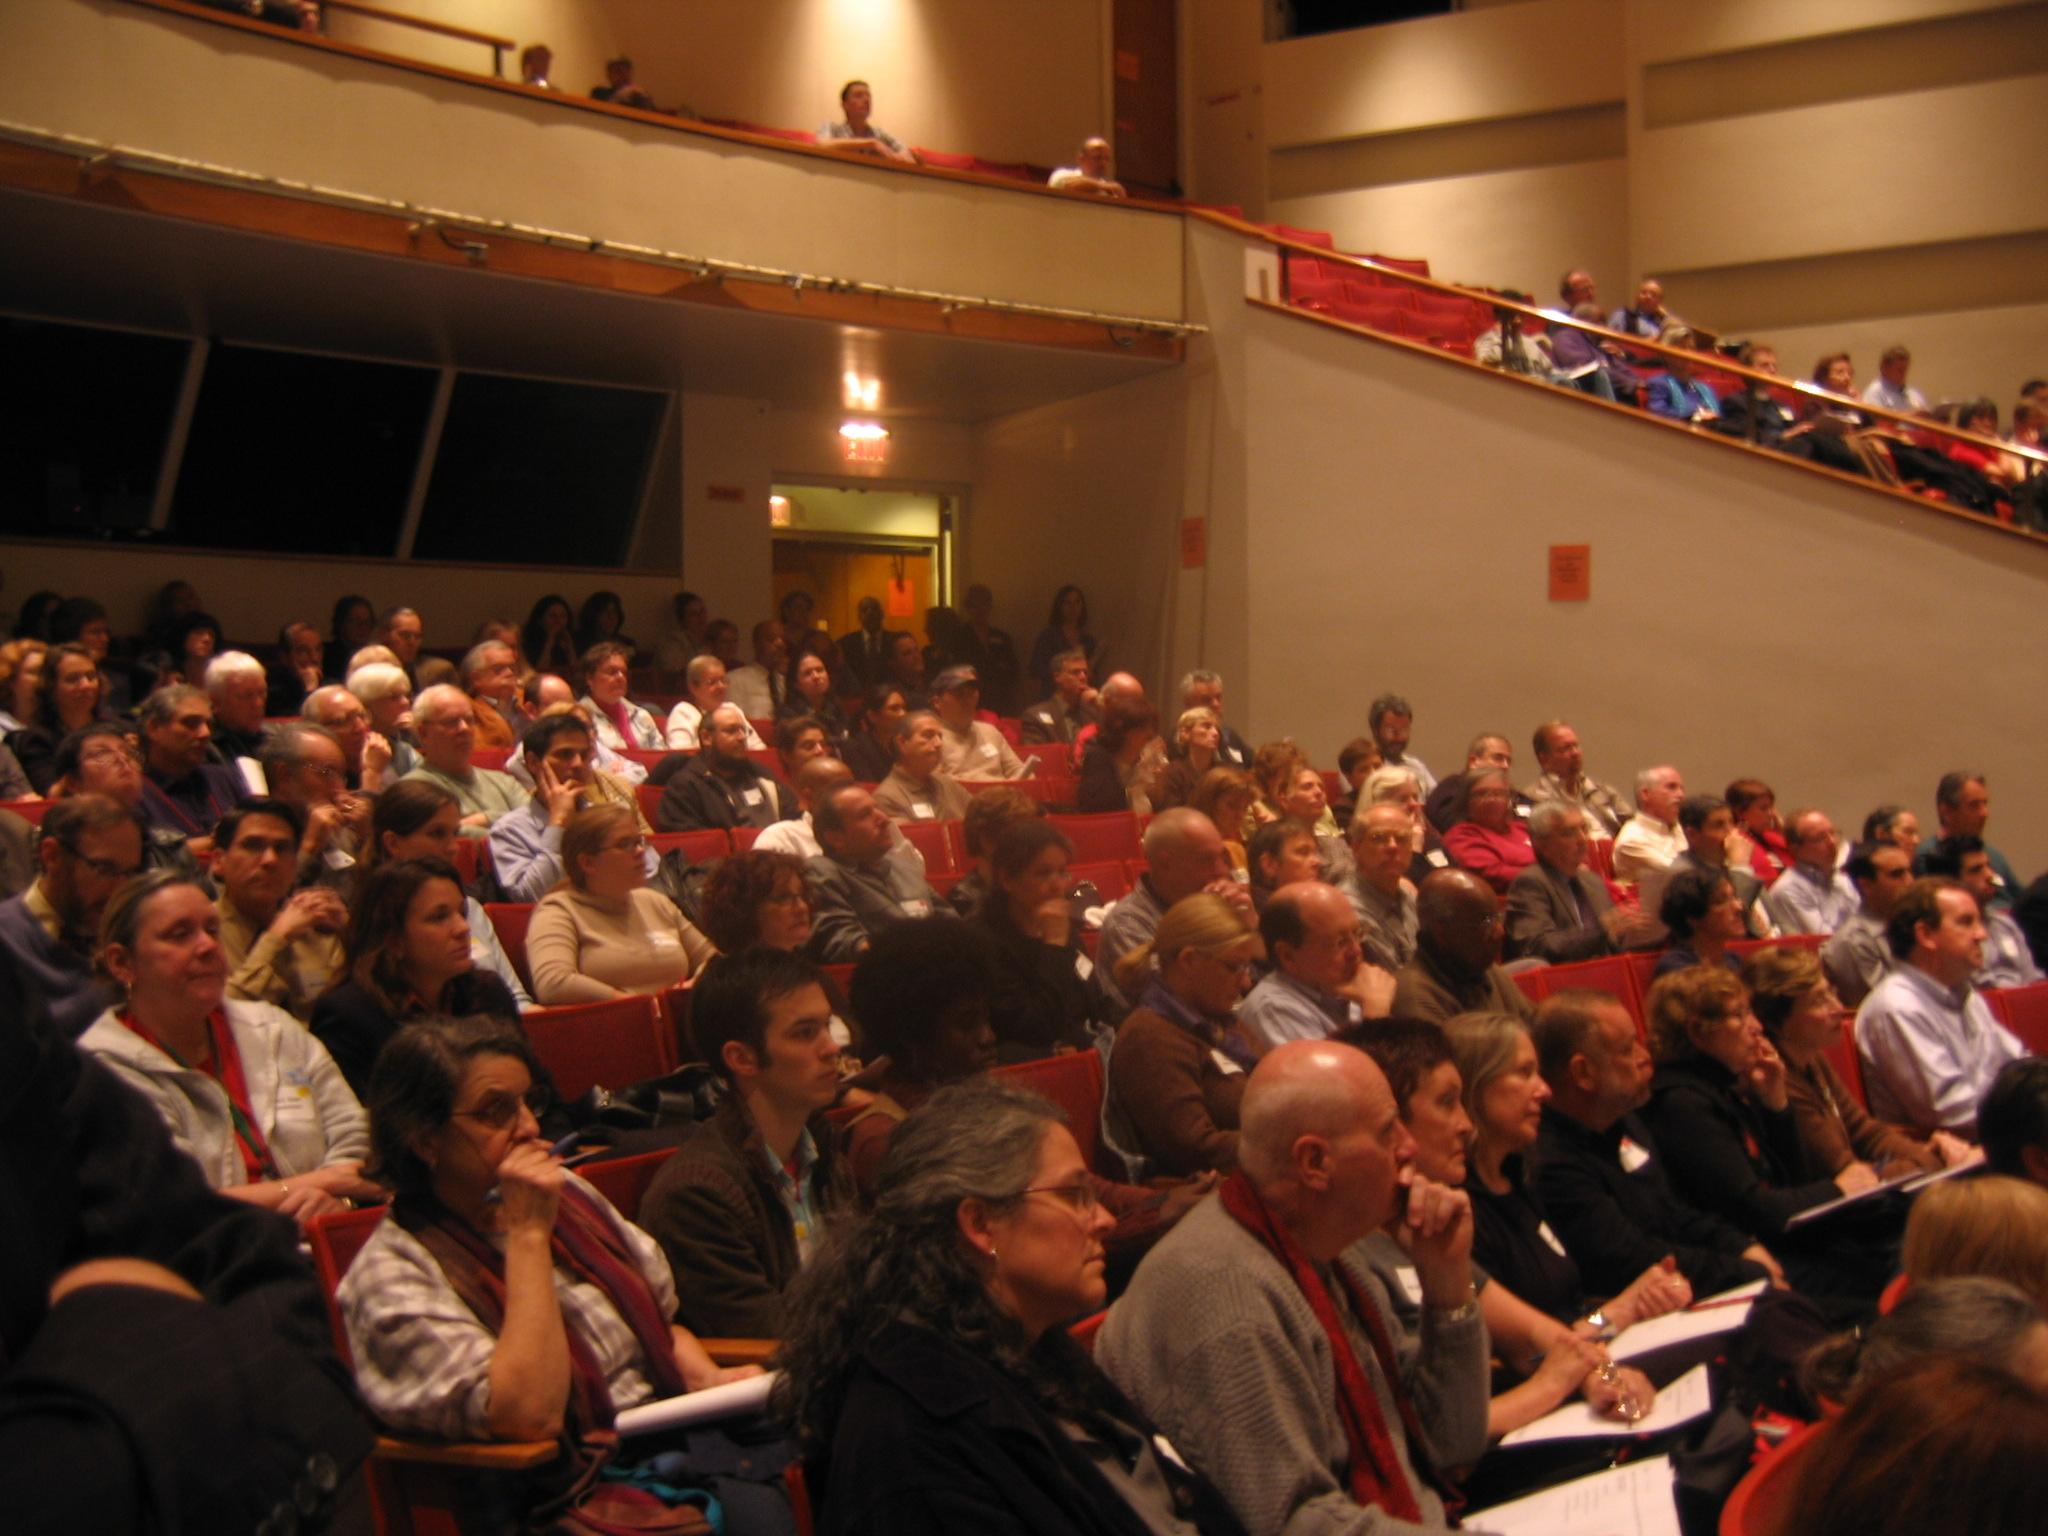 Attendees listen during value session at Seaport Museum